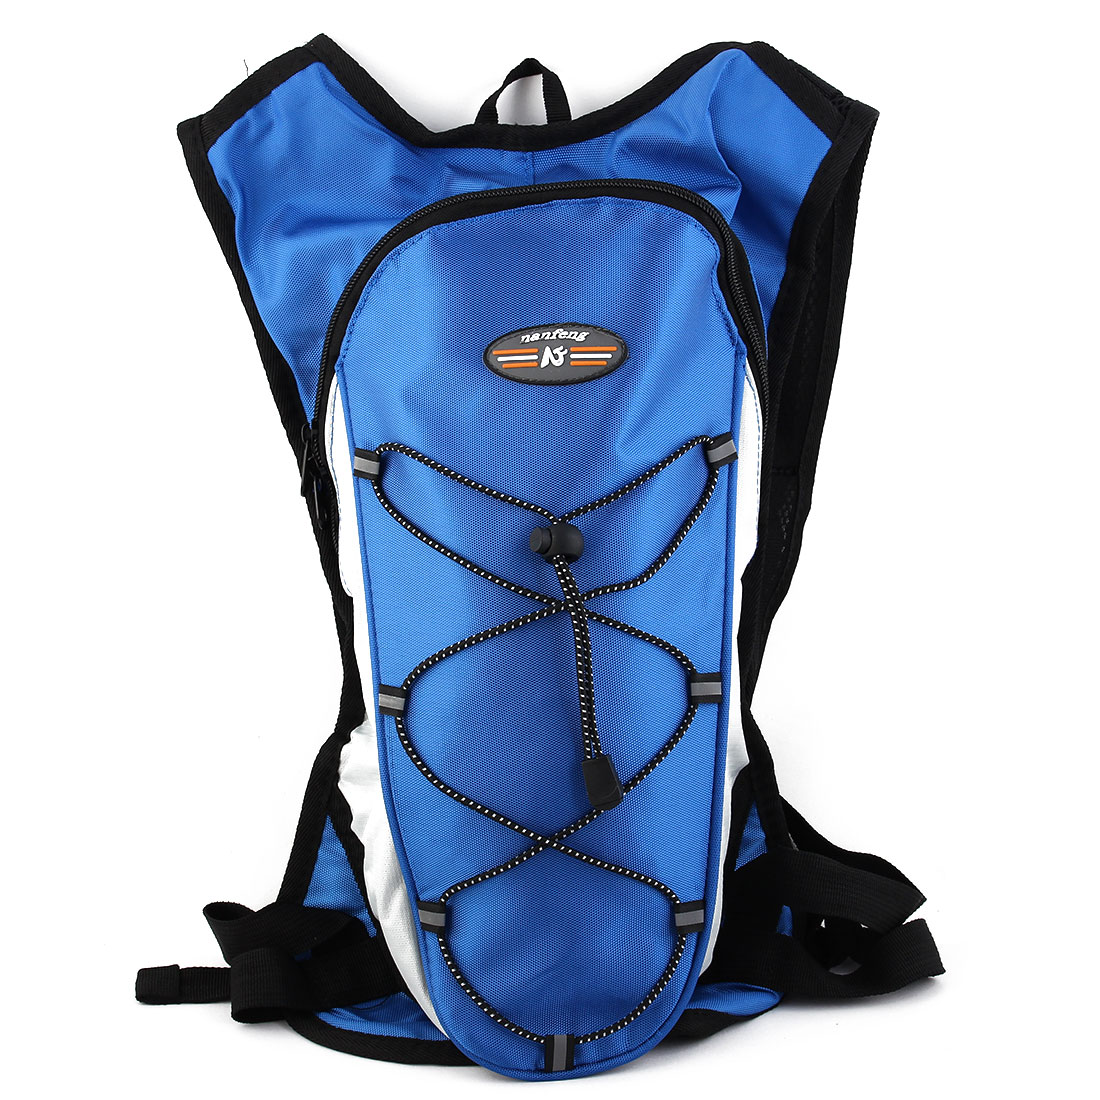 Outdoor Hiking Camping Cycling Water Bladder Bag Hydration Backpack Pack Blue